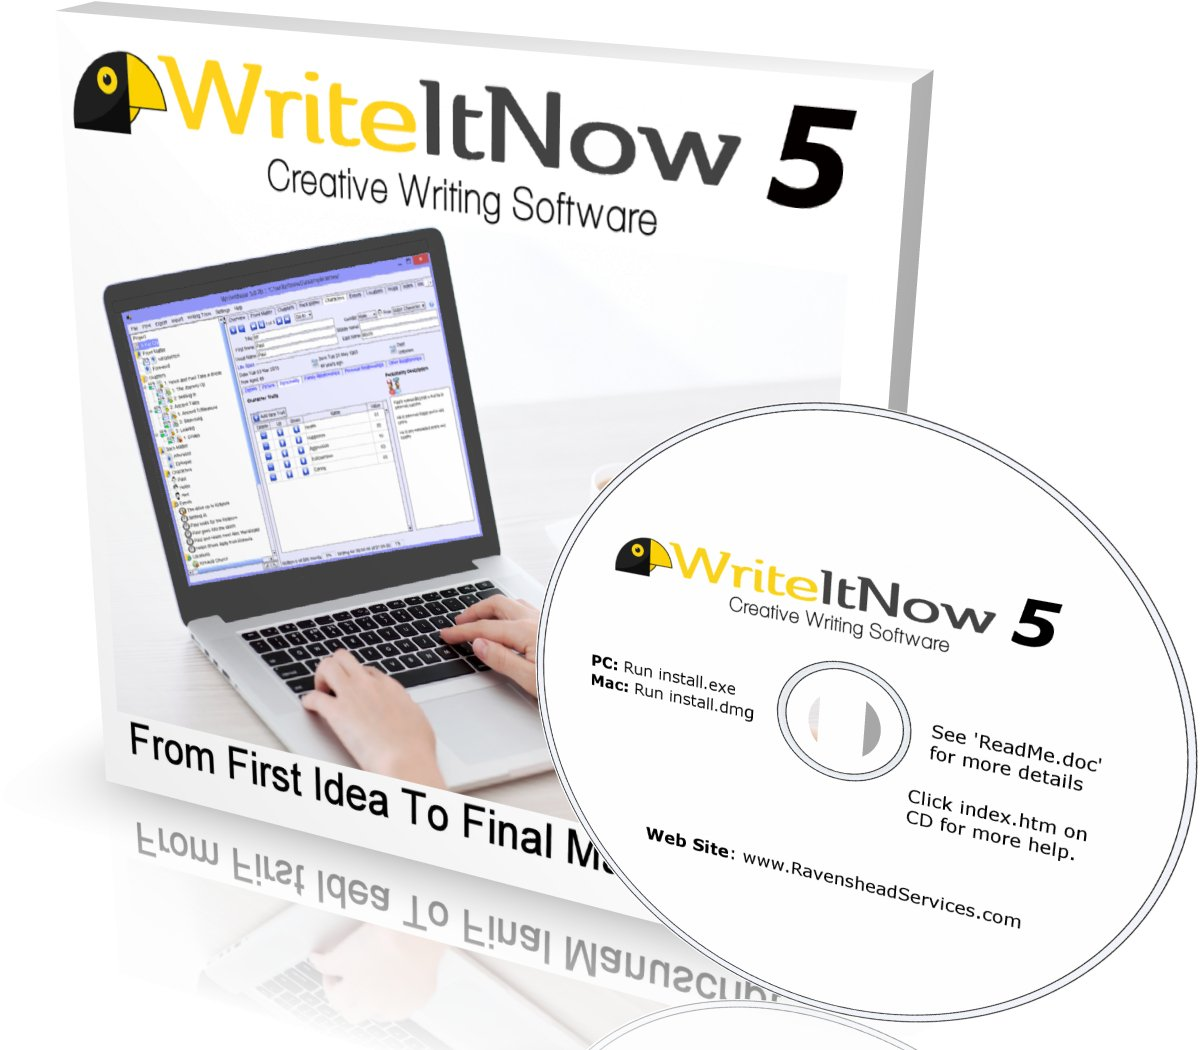 writing and software Best creative writing software: we have reviewed the best creative writing software for years in our latest tests, we spent over 30 hours evaluating 10 creative writing programs to rank.